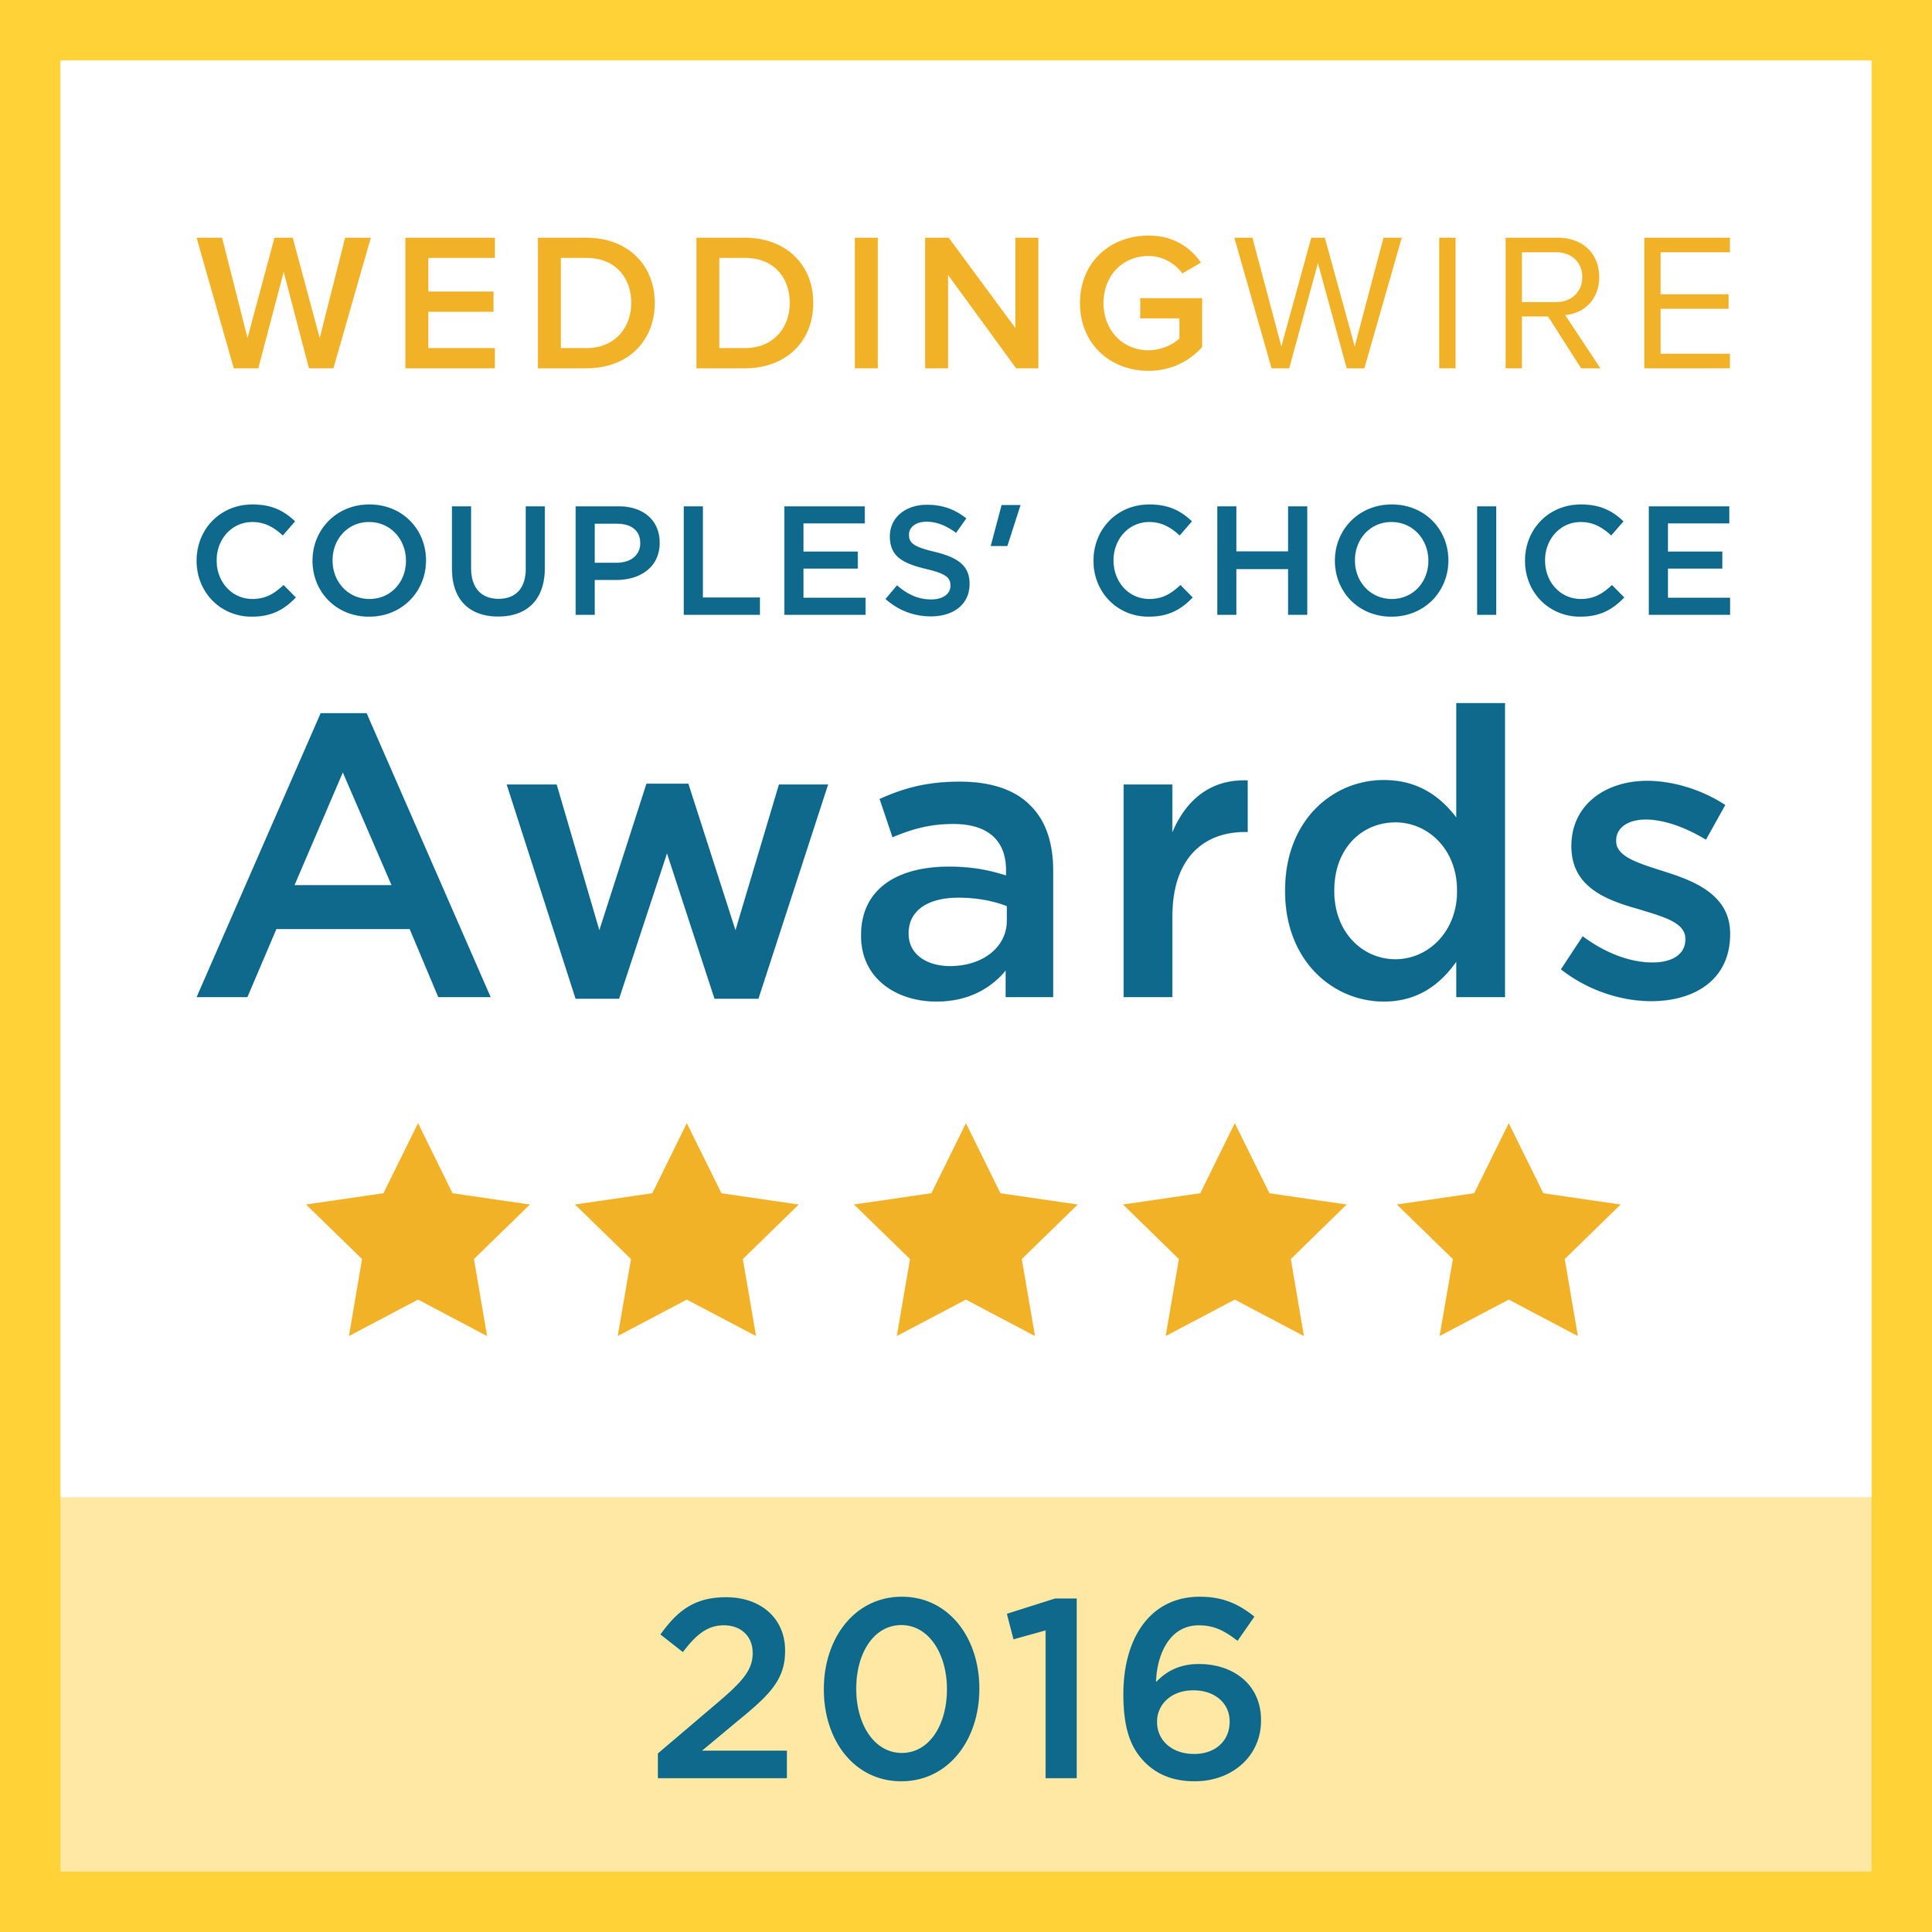 badge-weddingawards_en_US-5.jpg